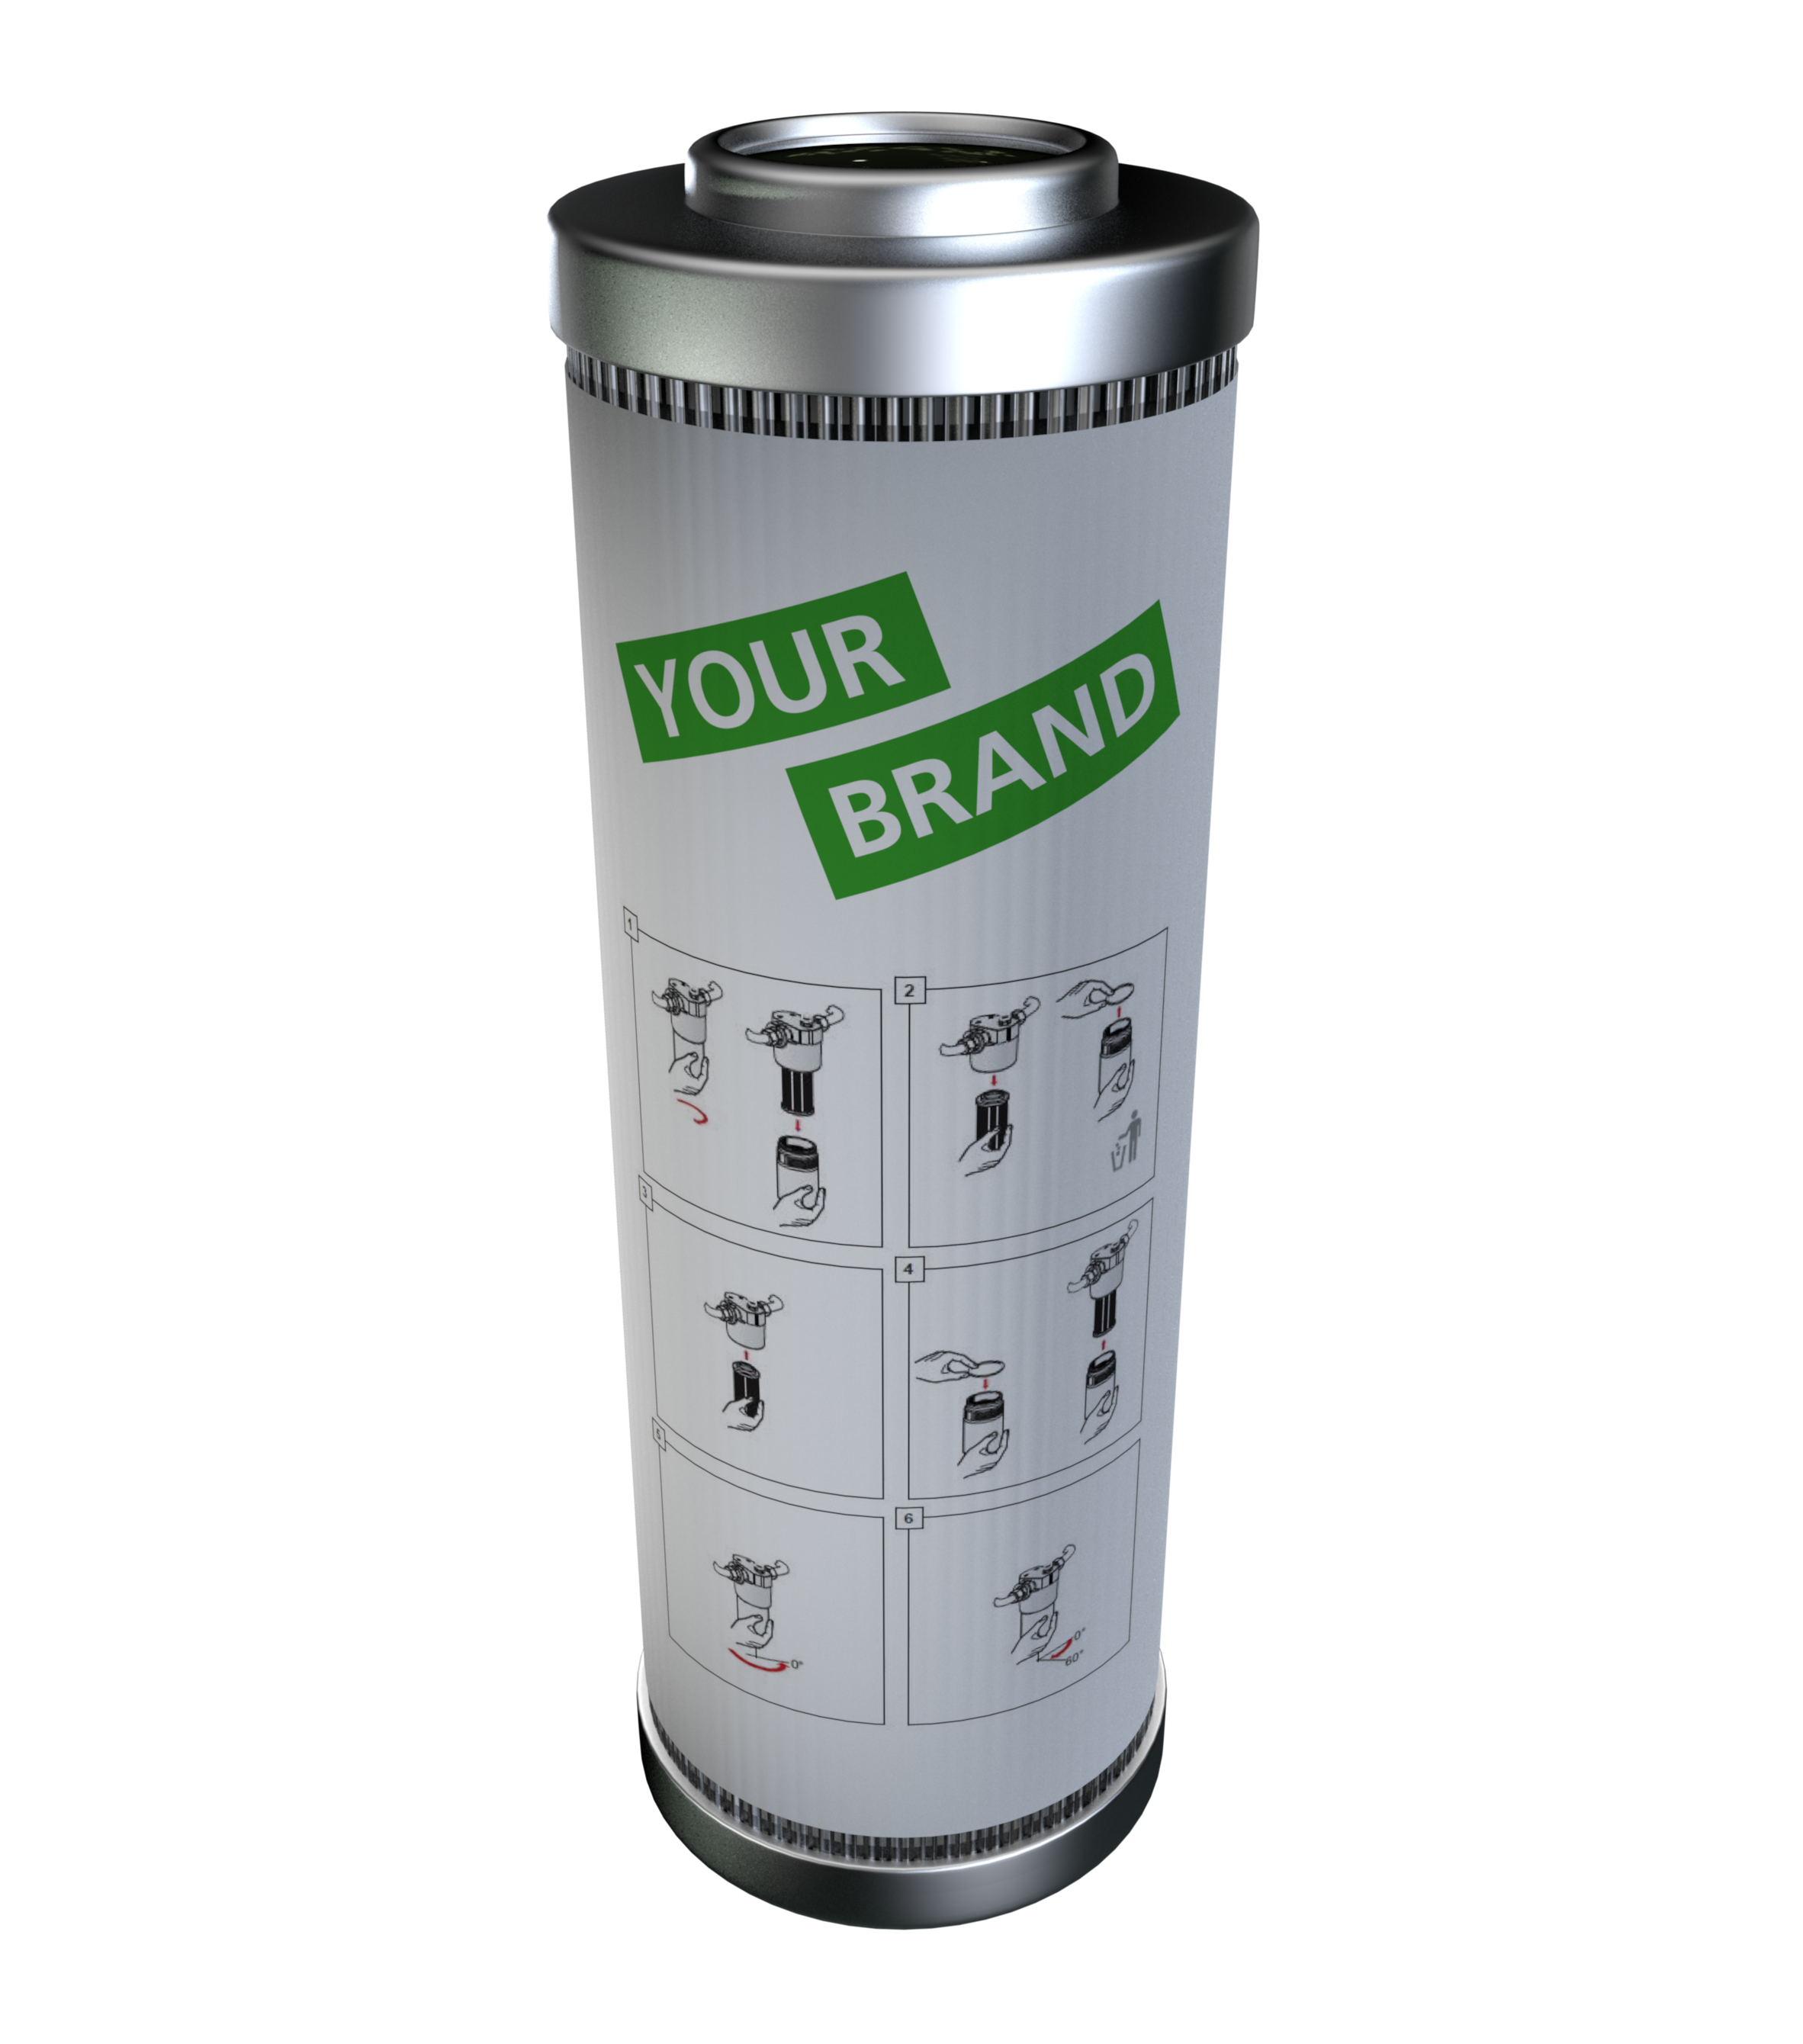 YourBrand_01